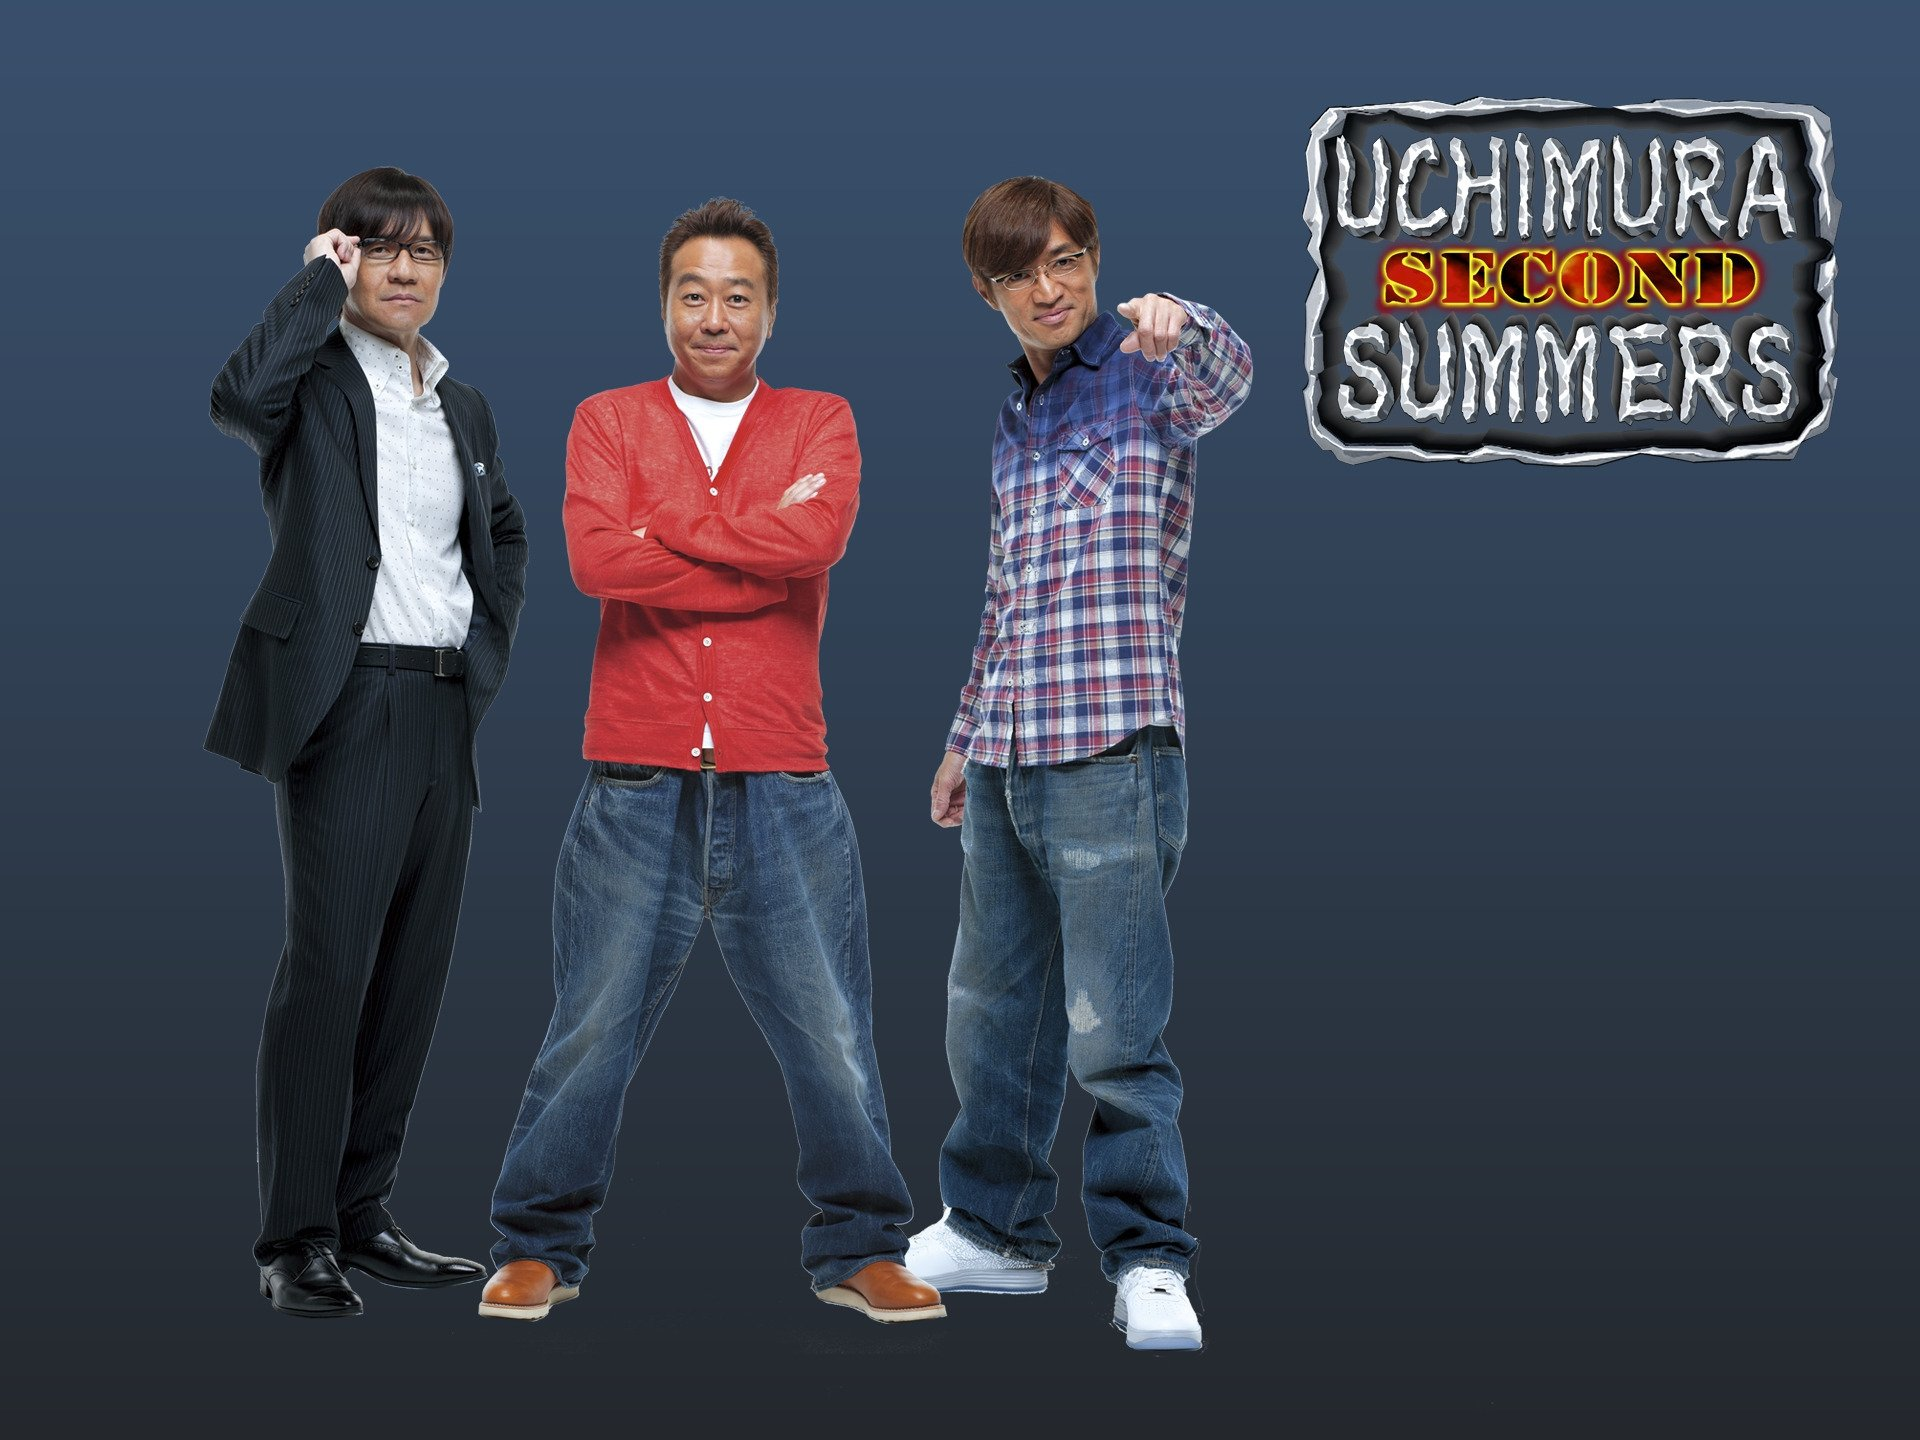 Uchimura Summers Second - Season 1